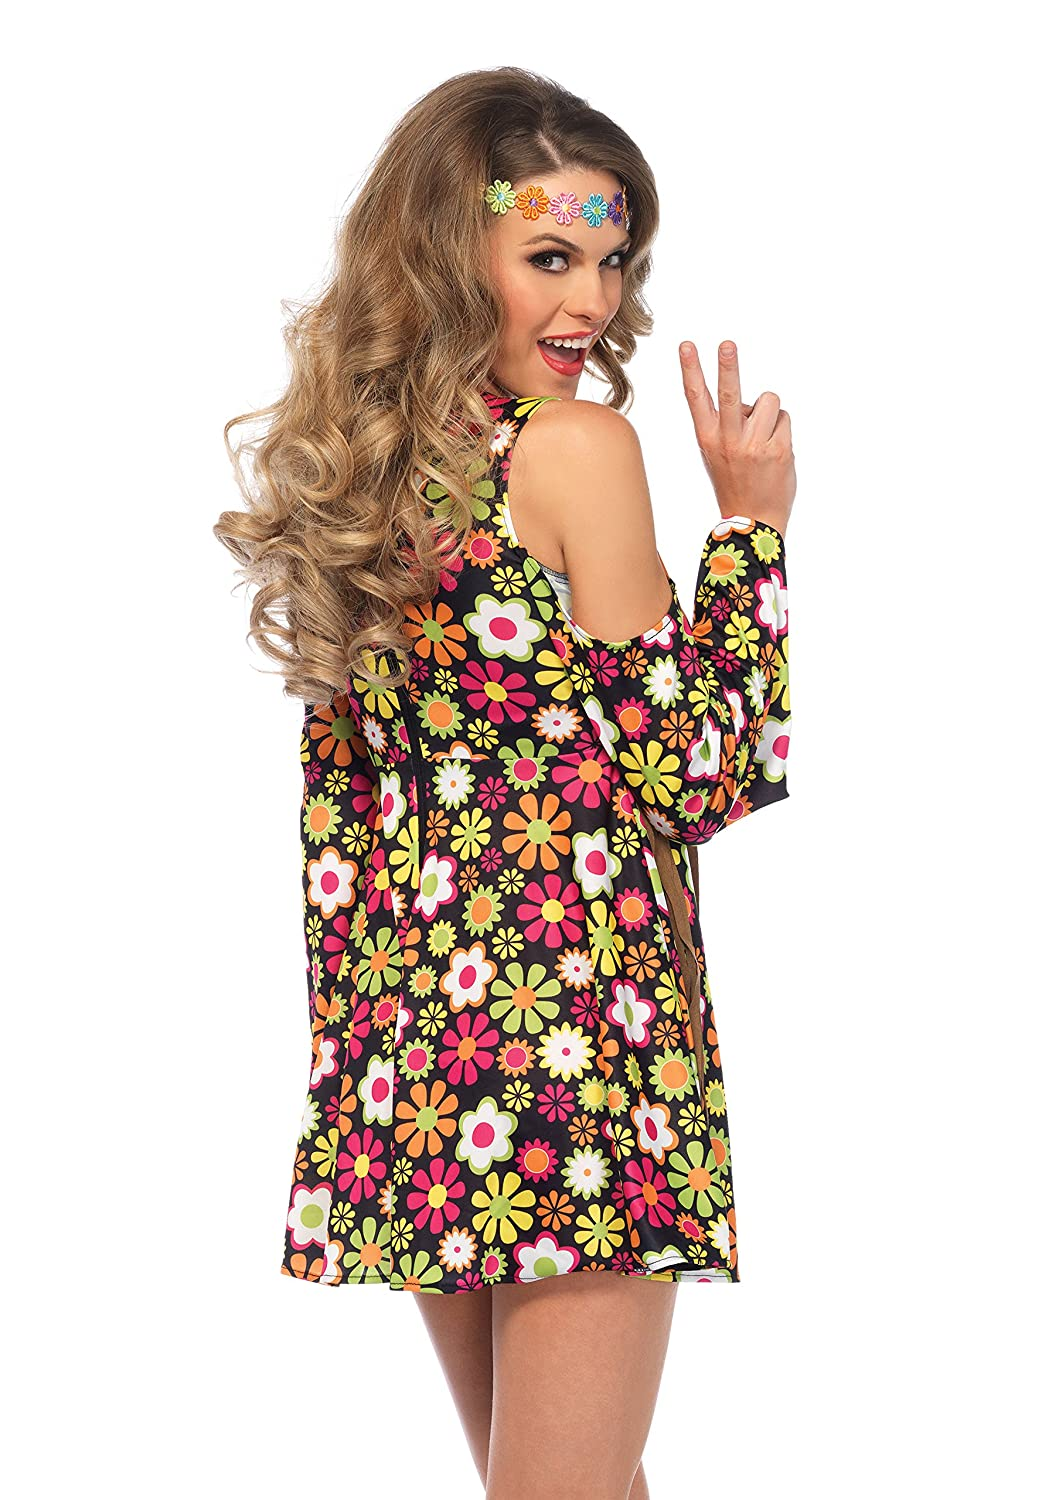 2019 year for women- Clothes Hippie for women plus size pictures